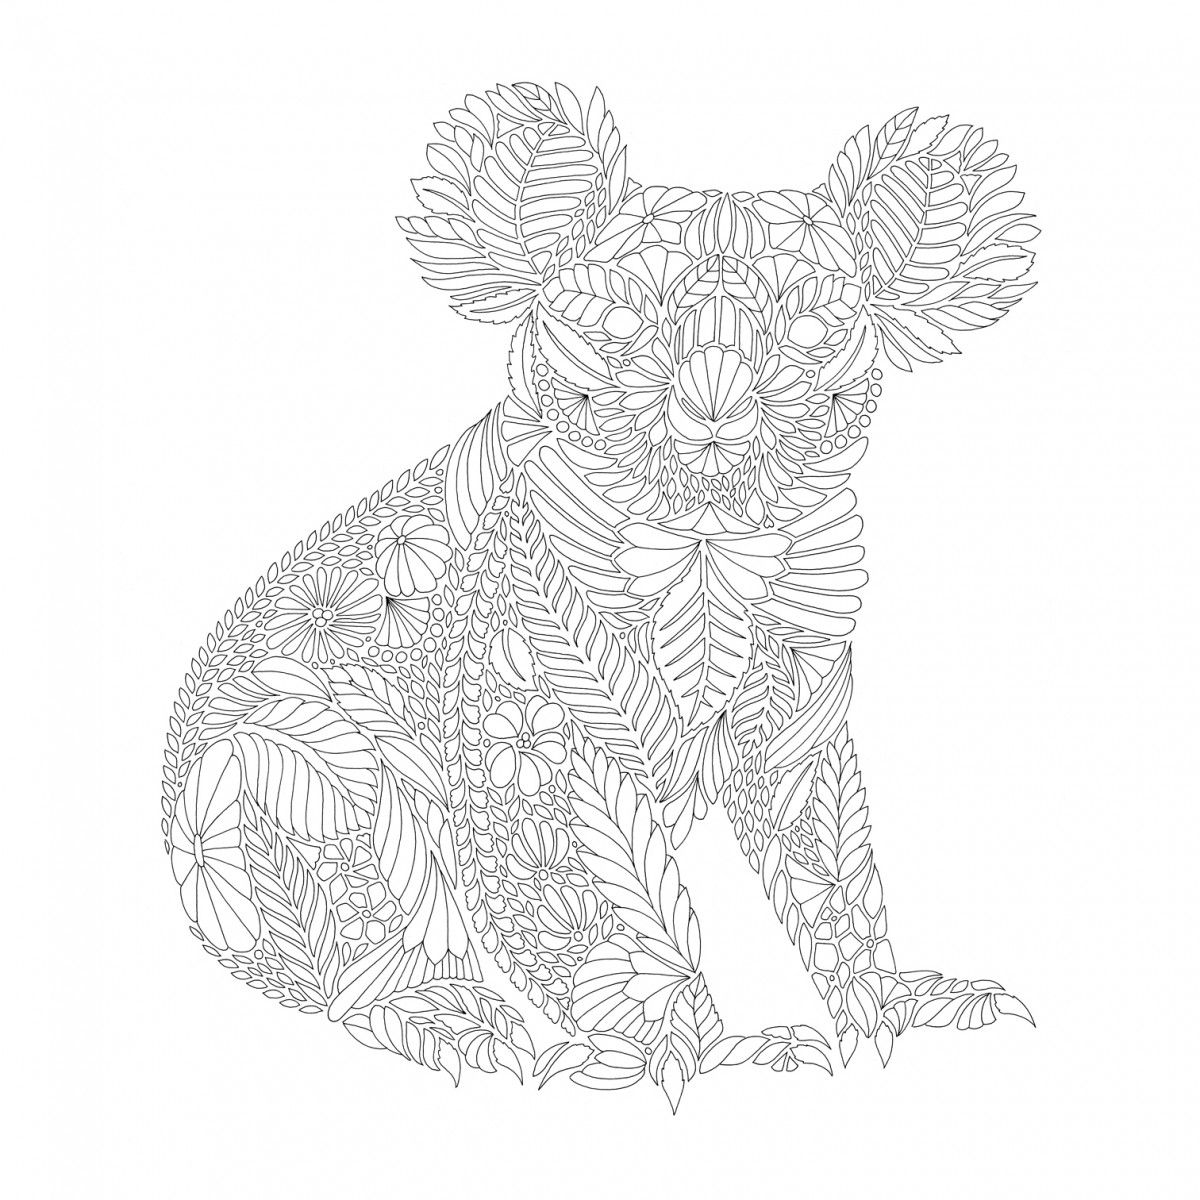 Millie Marotta Koala Birds Free Colouring Download Milliemarotta Koala Kingfishe Millie Marotta Coloring Book Mandala Coloring Pages Animal Coloring Pages [ 1200 x 1200 Pixel ]